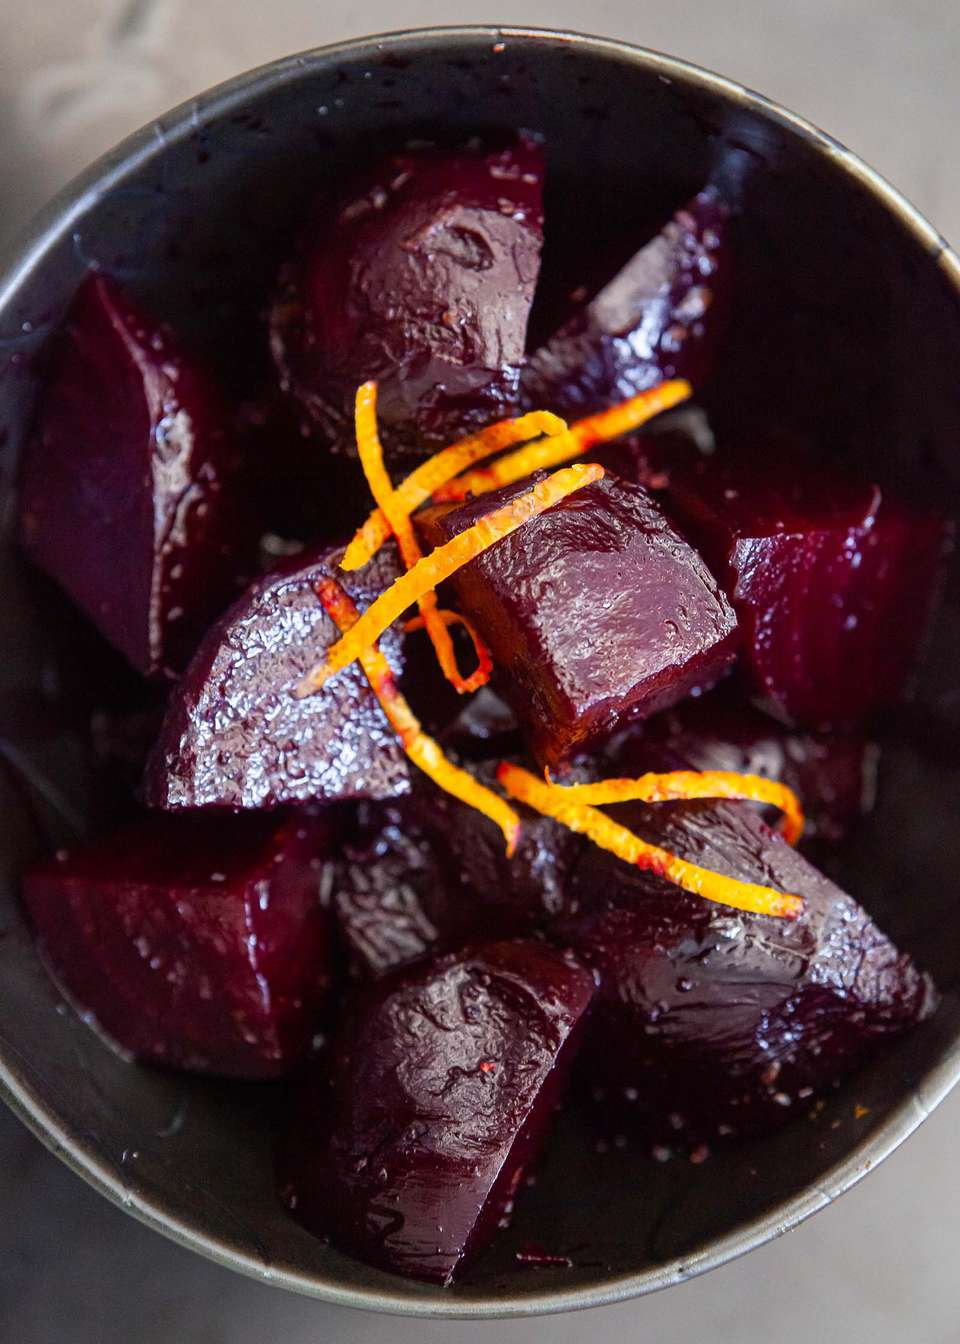 roasted beets with orange in a serving bowl